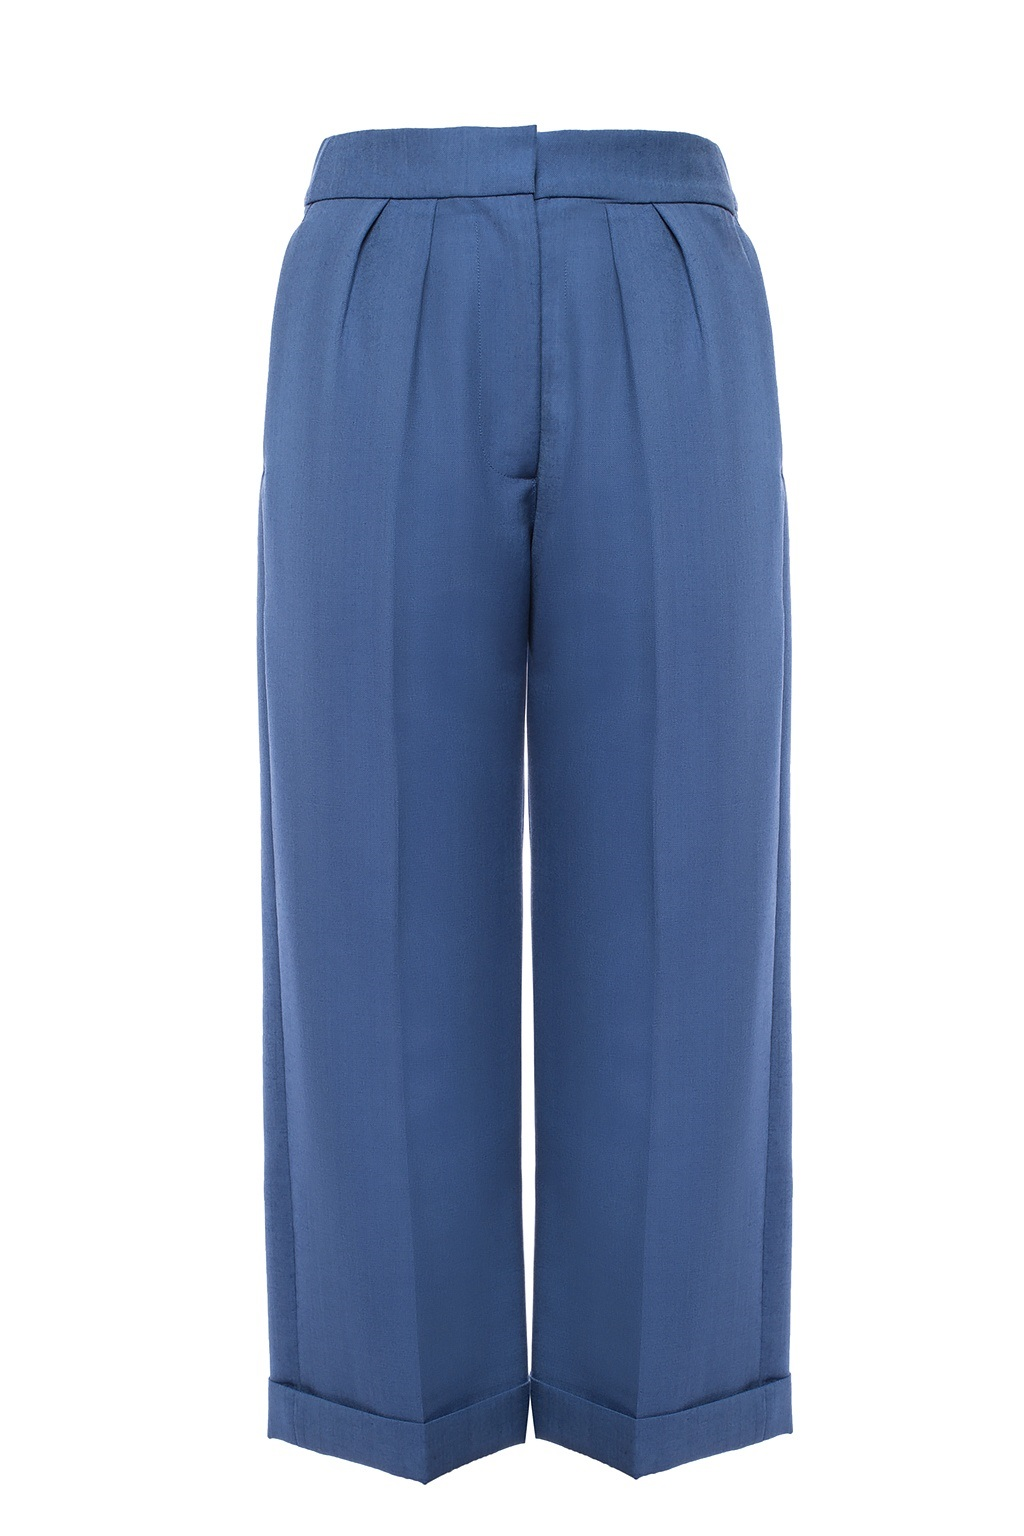 Burberry Wool Mohair Cropped Tailored Trousers In Blue